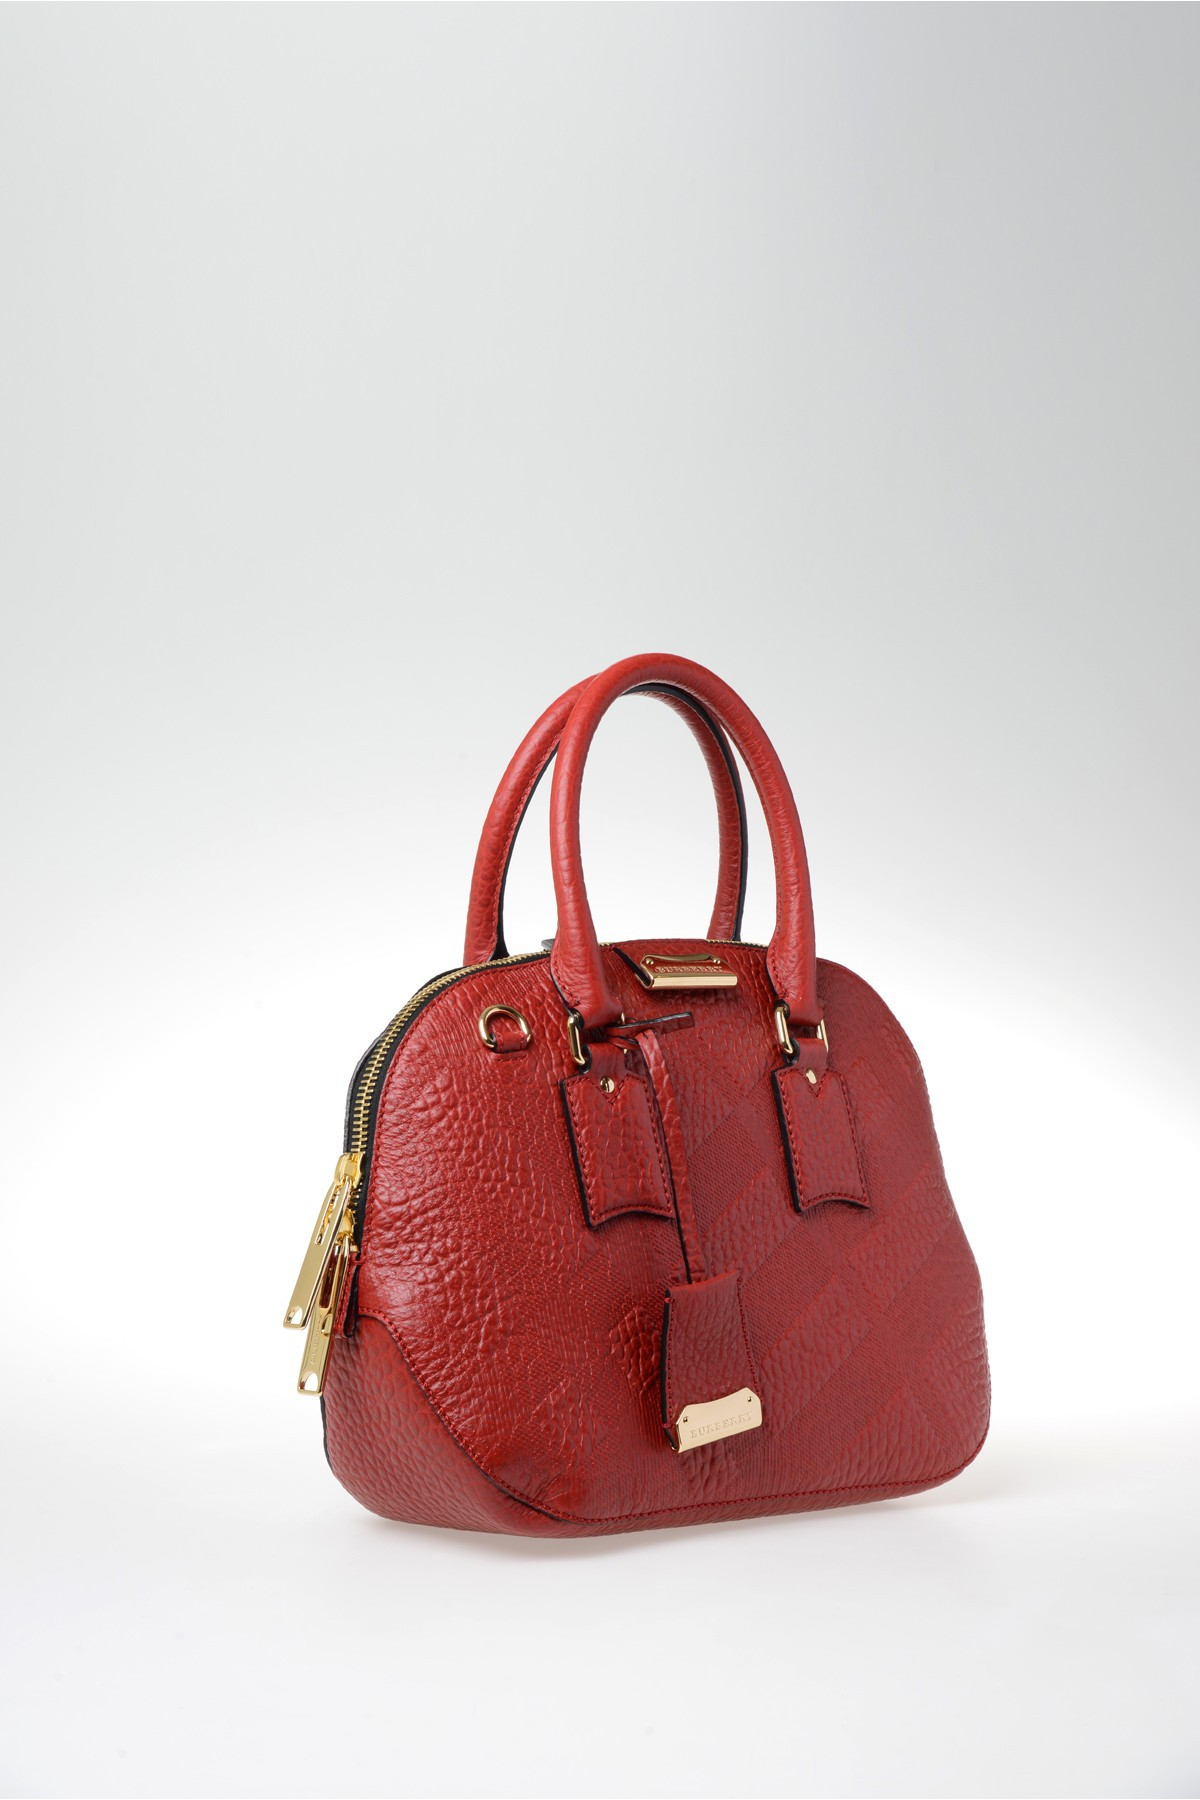 burberry grain leather bag in red lyst